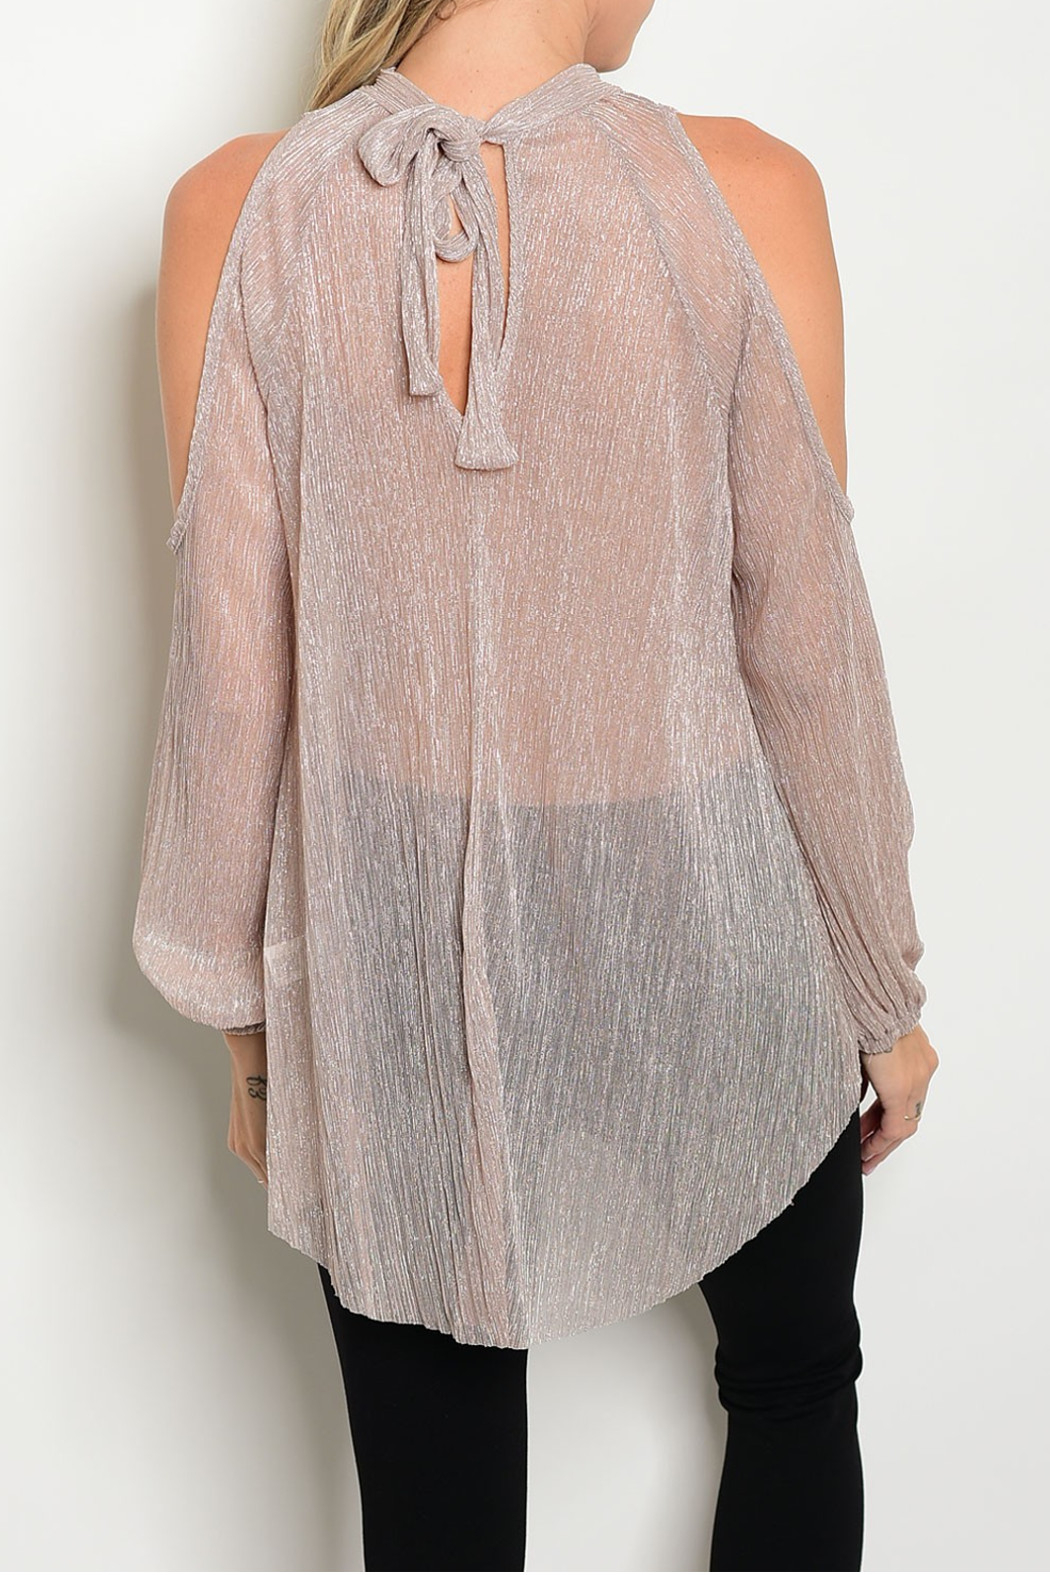 Sweet Claire Mauve Metallic Sheer Top - Front Full Image